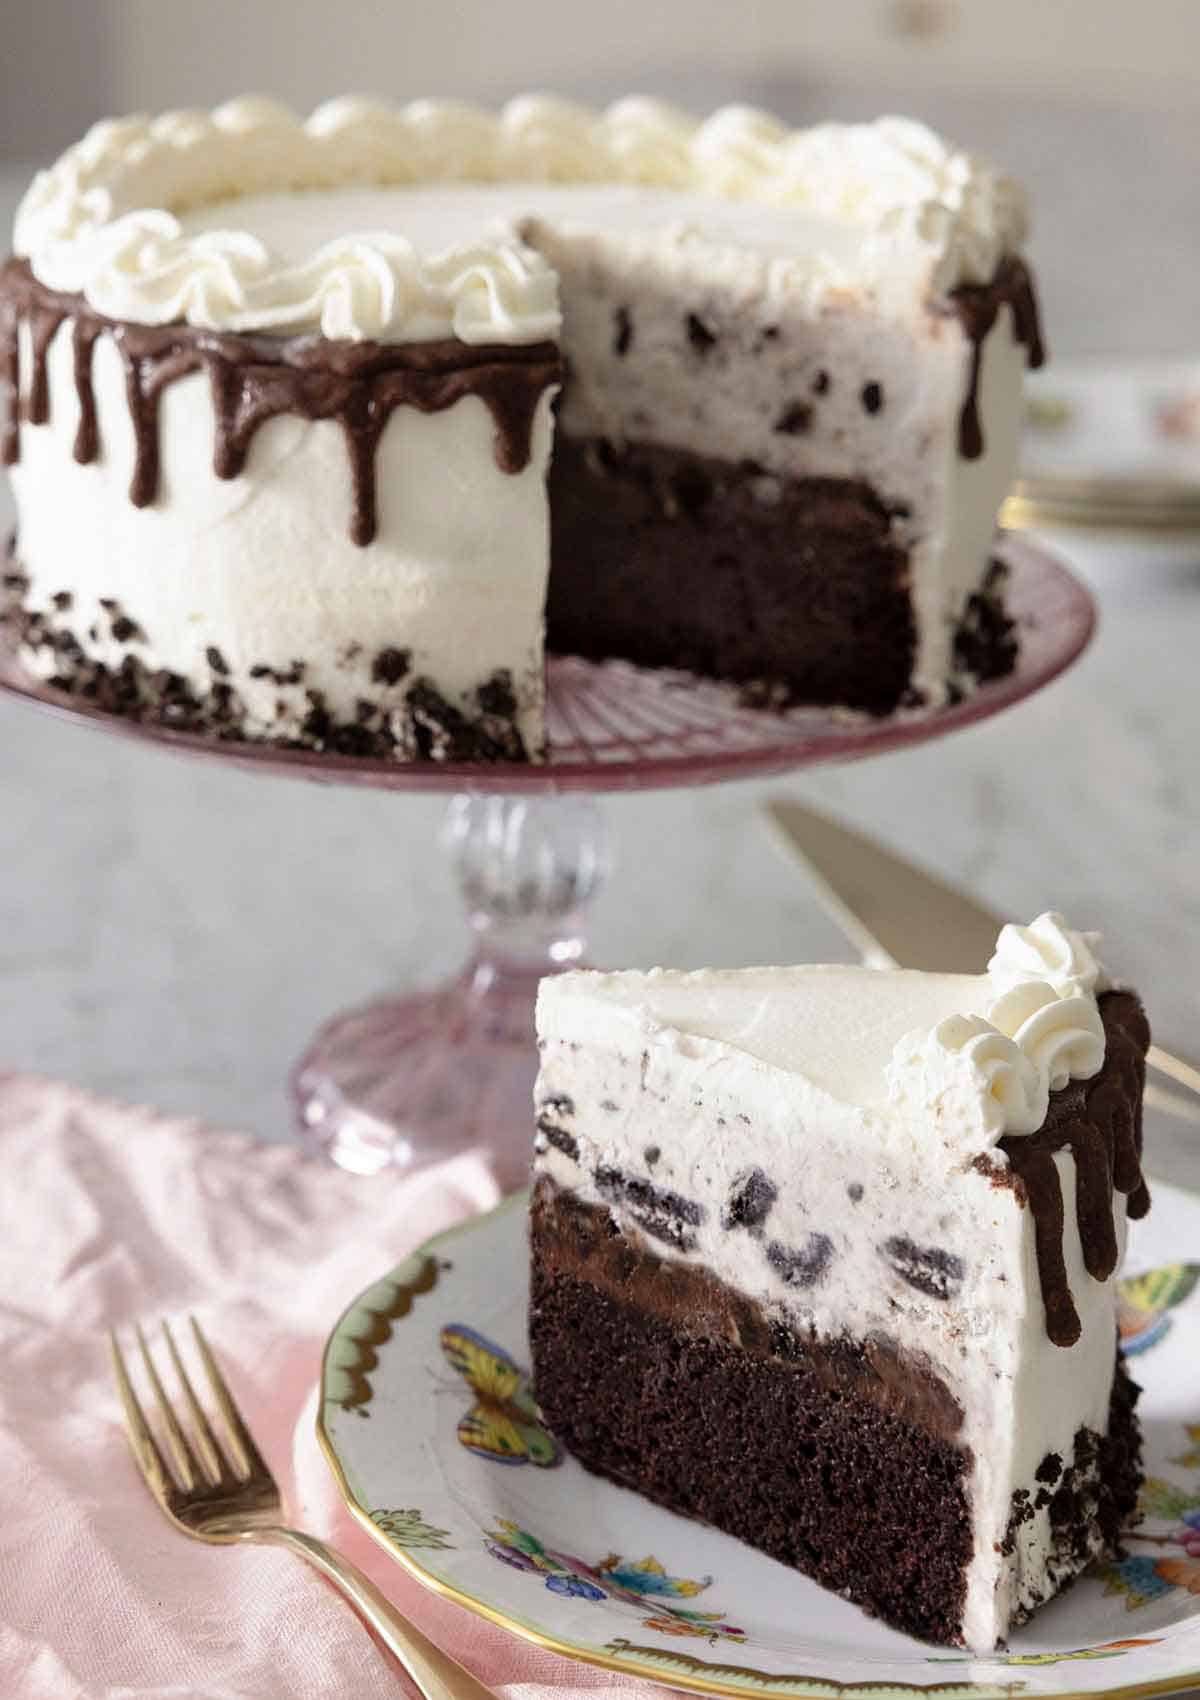 An ice cream cake on a cake stand with a slice cut out, on a plate in front.